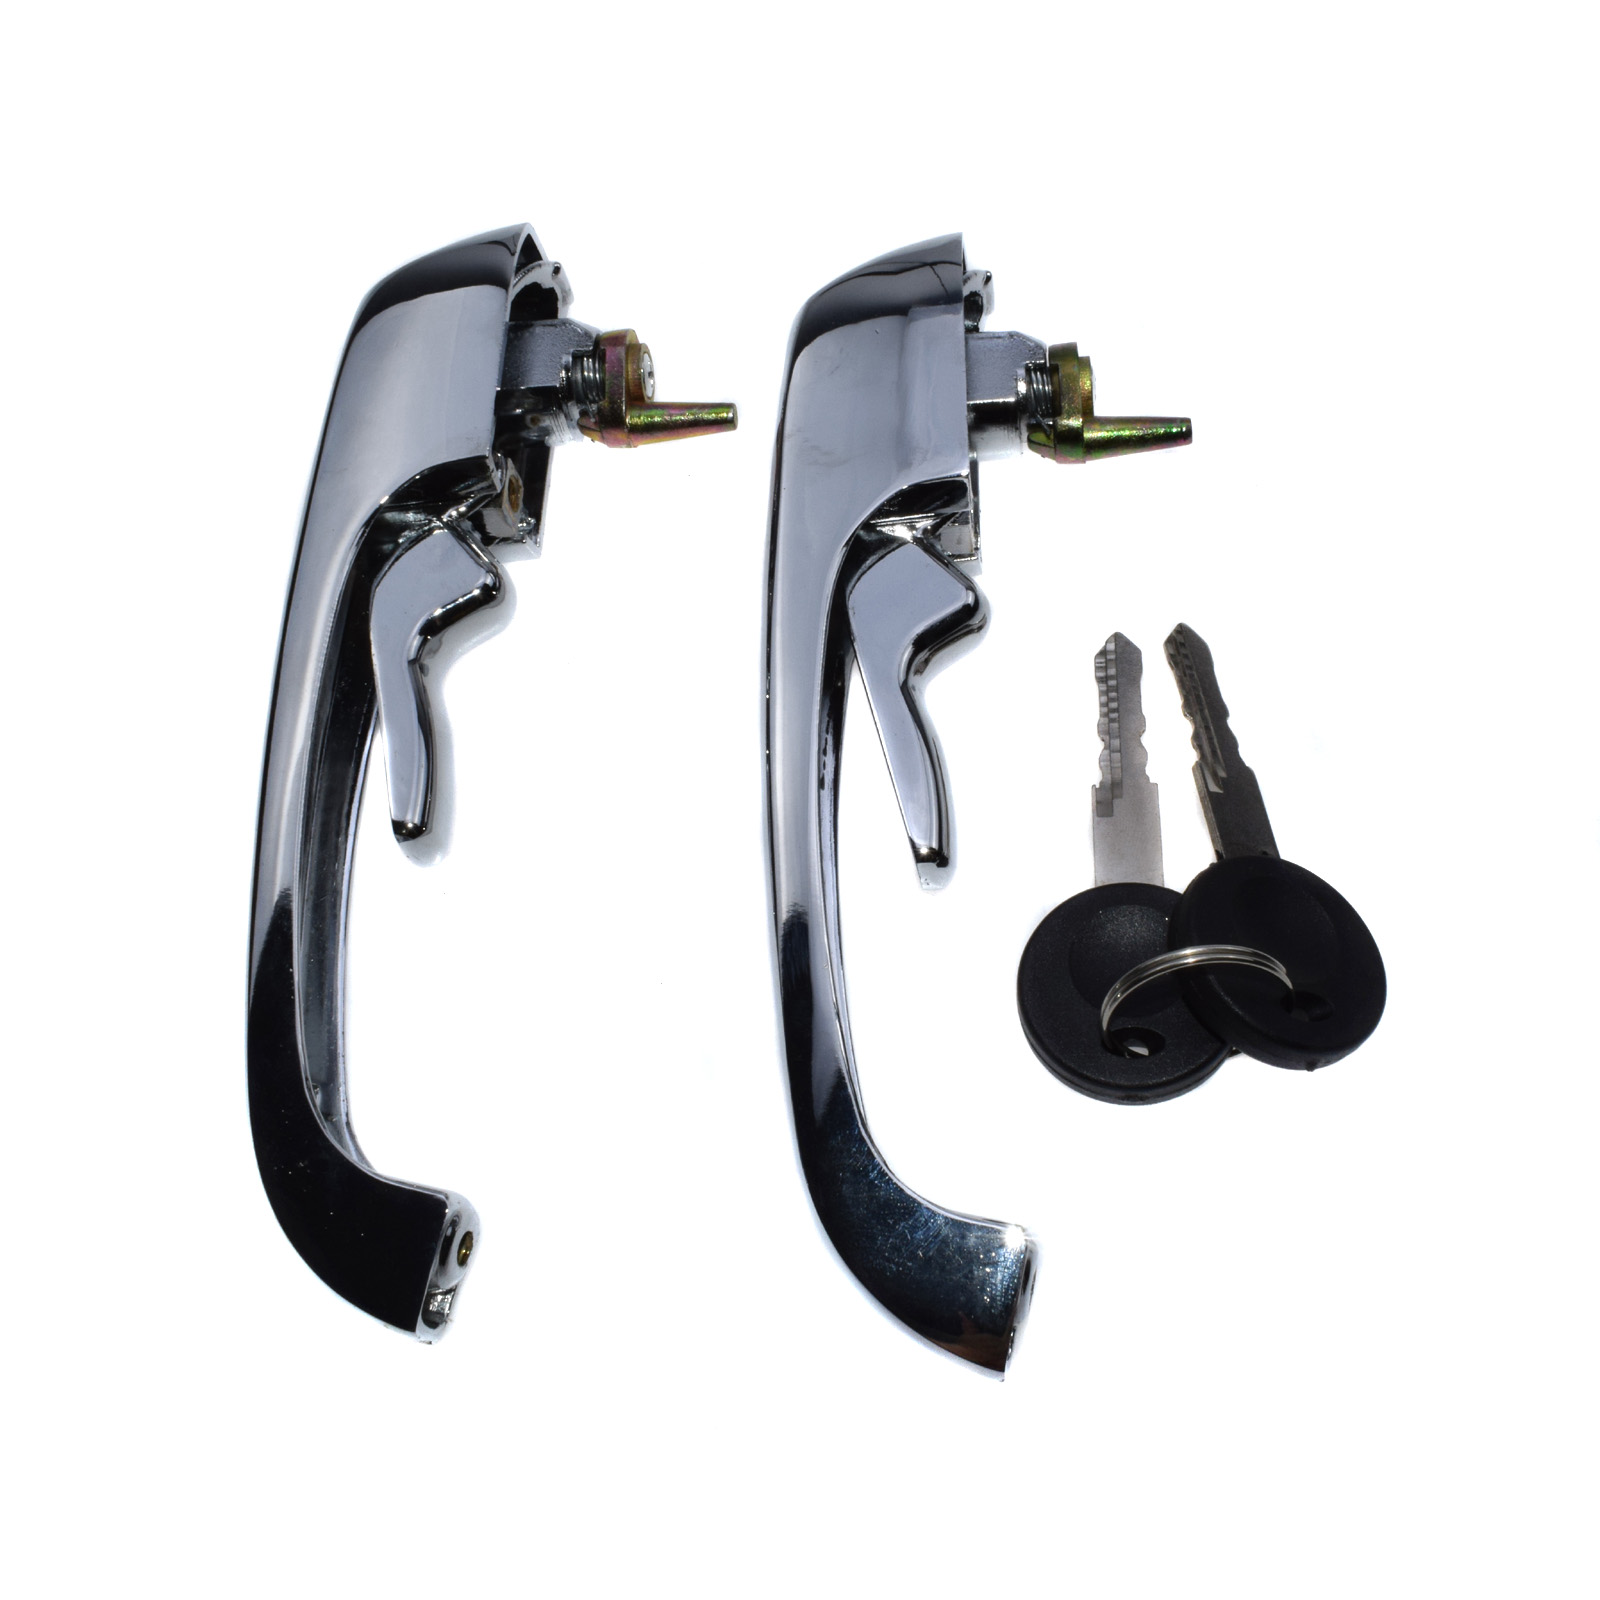 NEW VW Campmobile 69-79 Set of 2 Front Outside Door Handles Euromax 211 837 205N